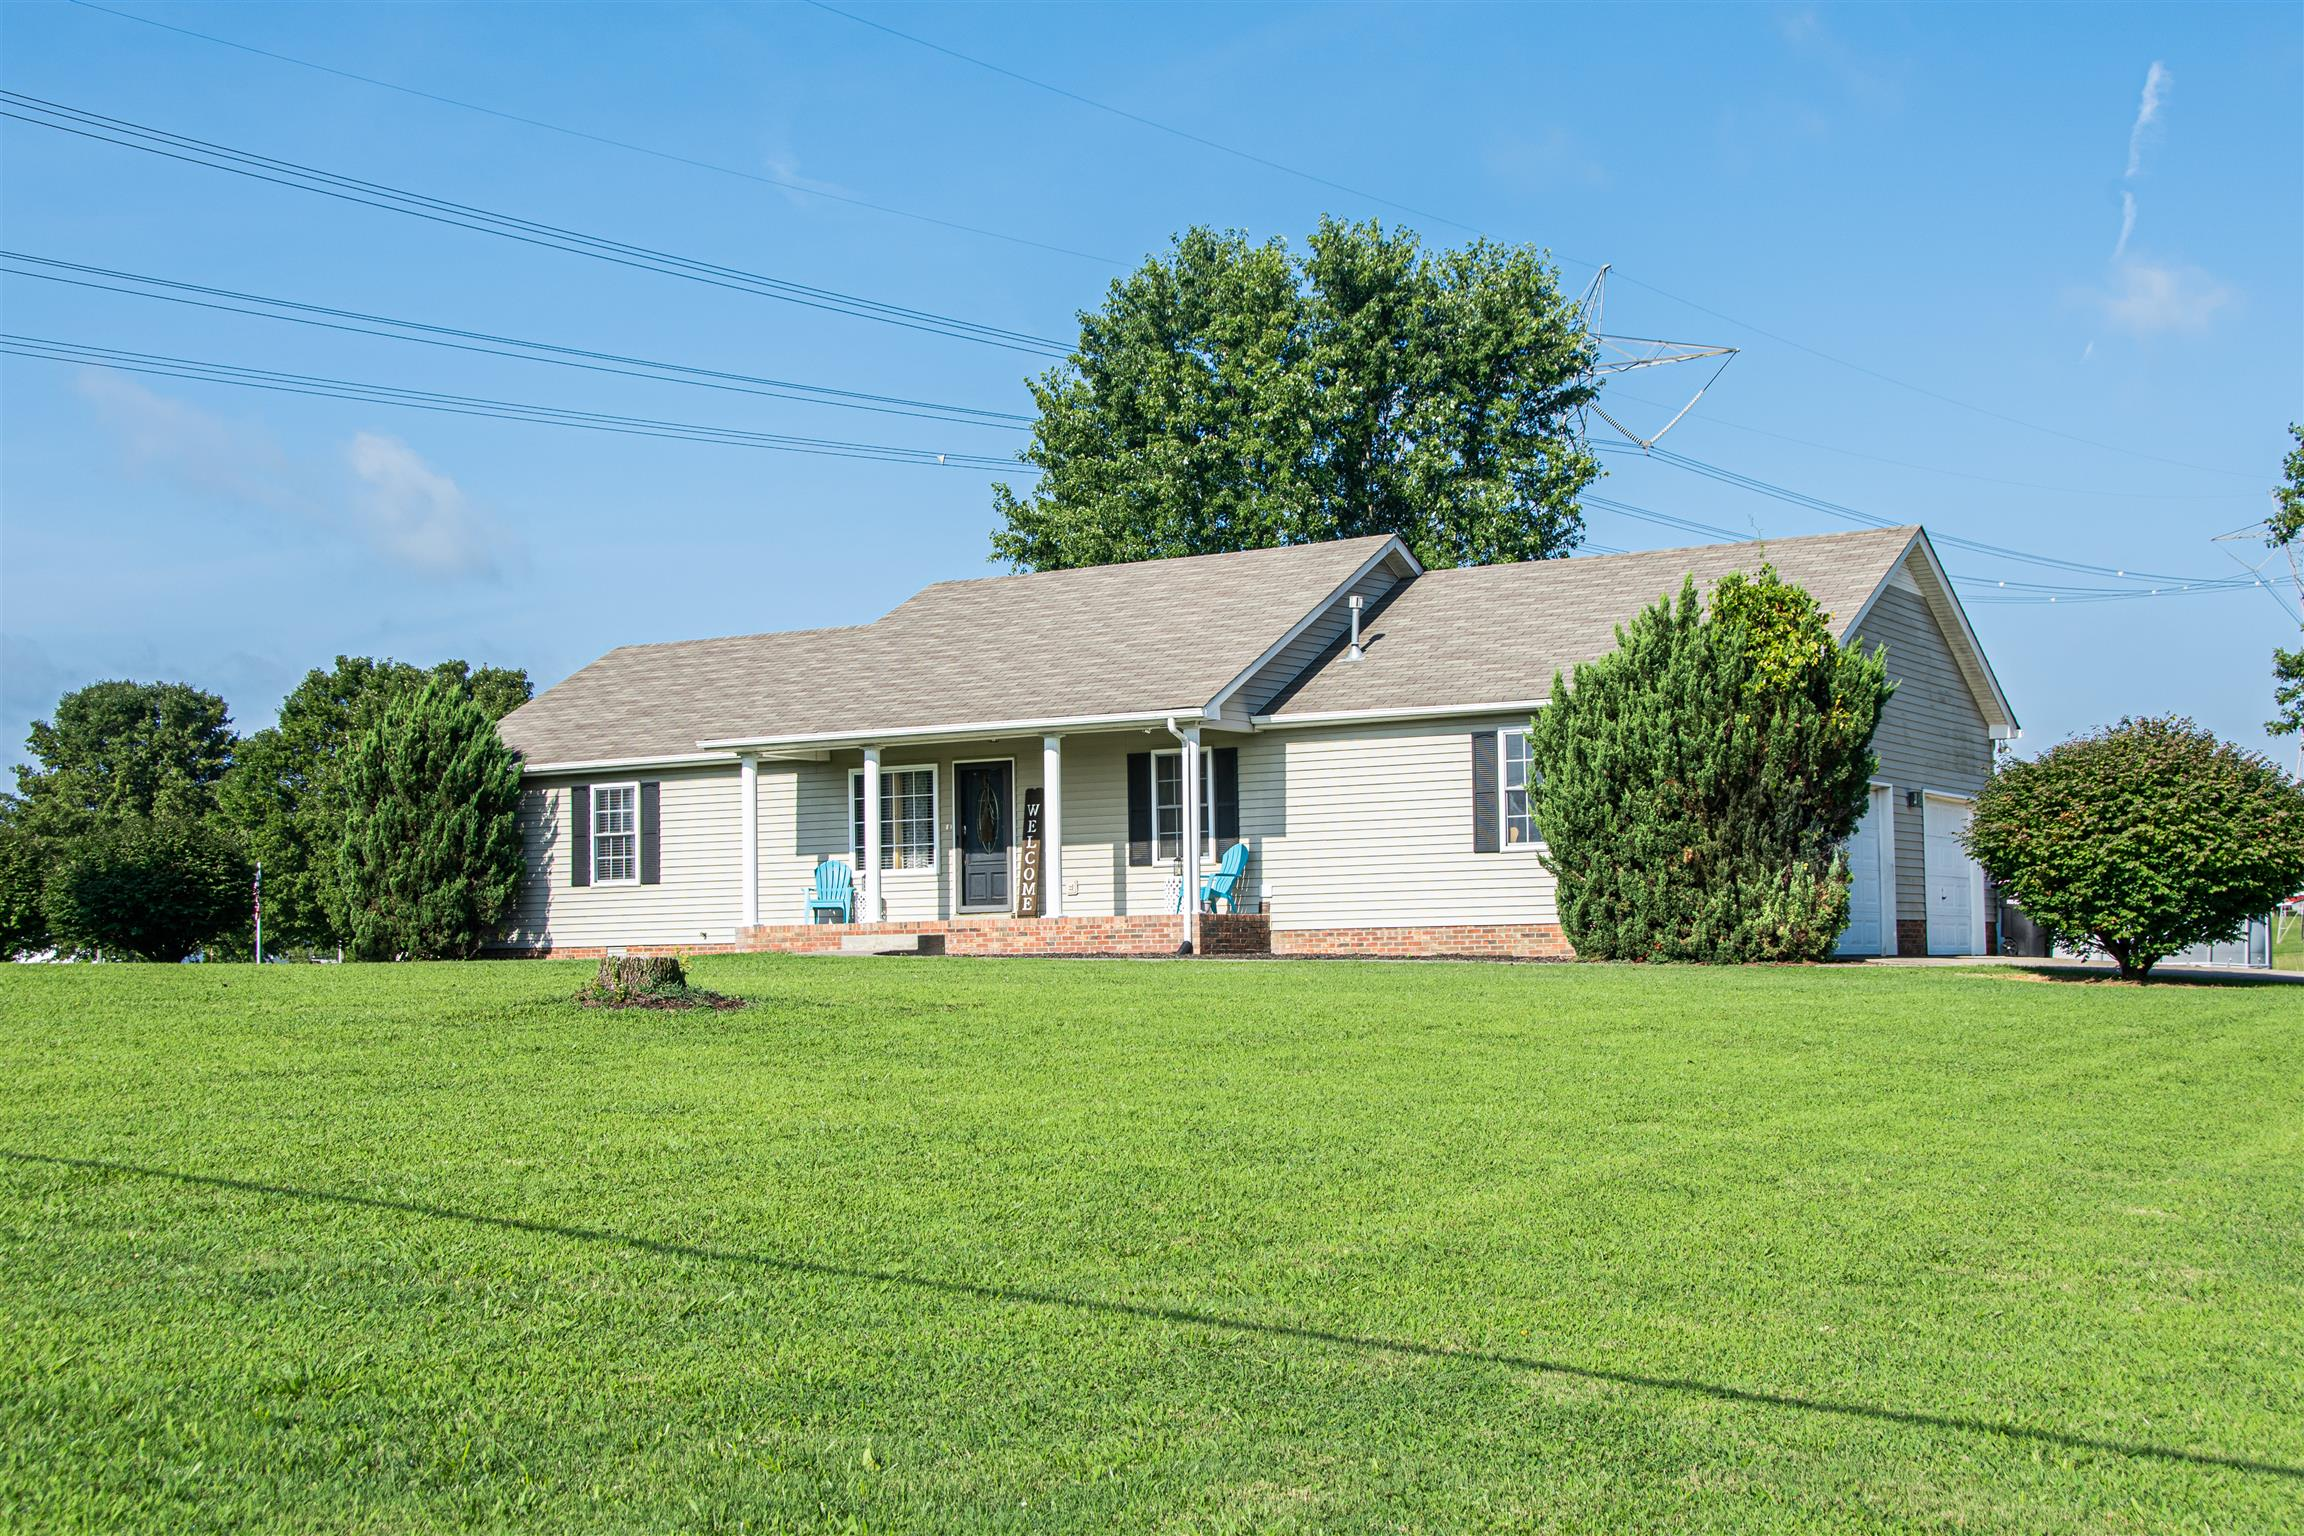 5548 Stacy Springs Rd, Springfield, TN 37172 - Springfield, TN real estate listing